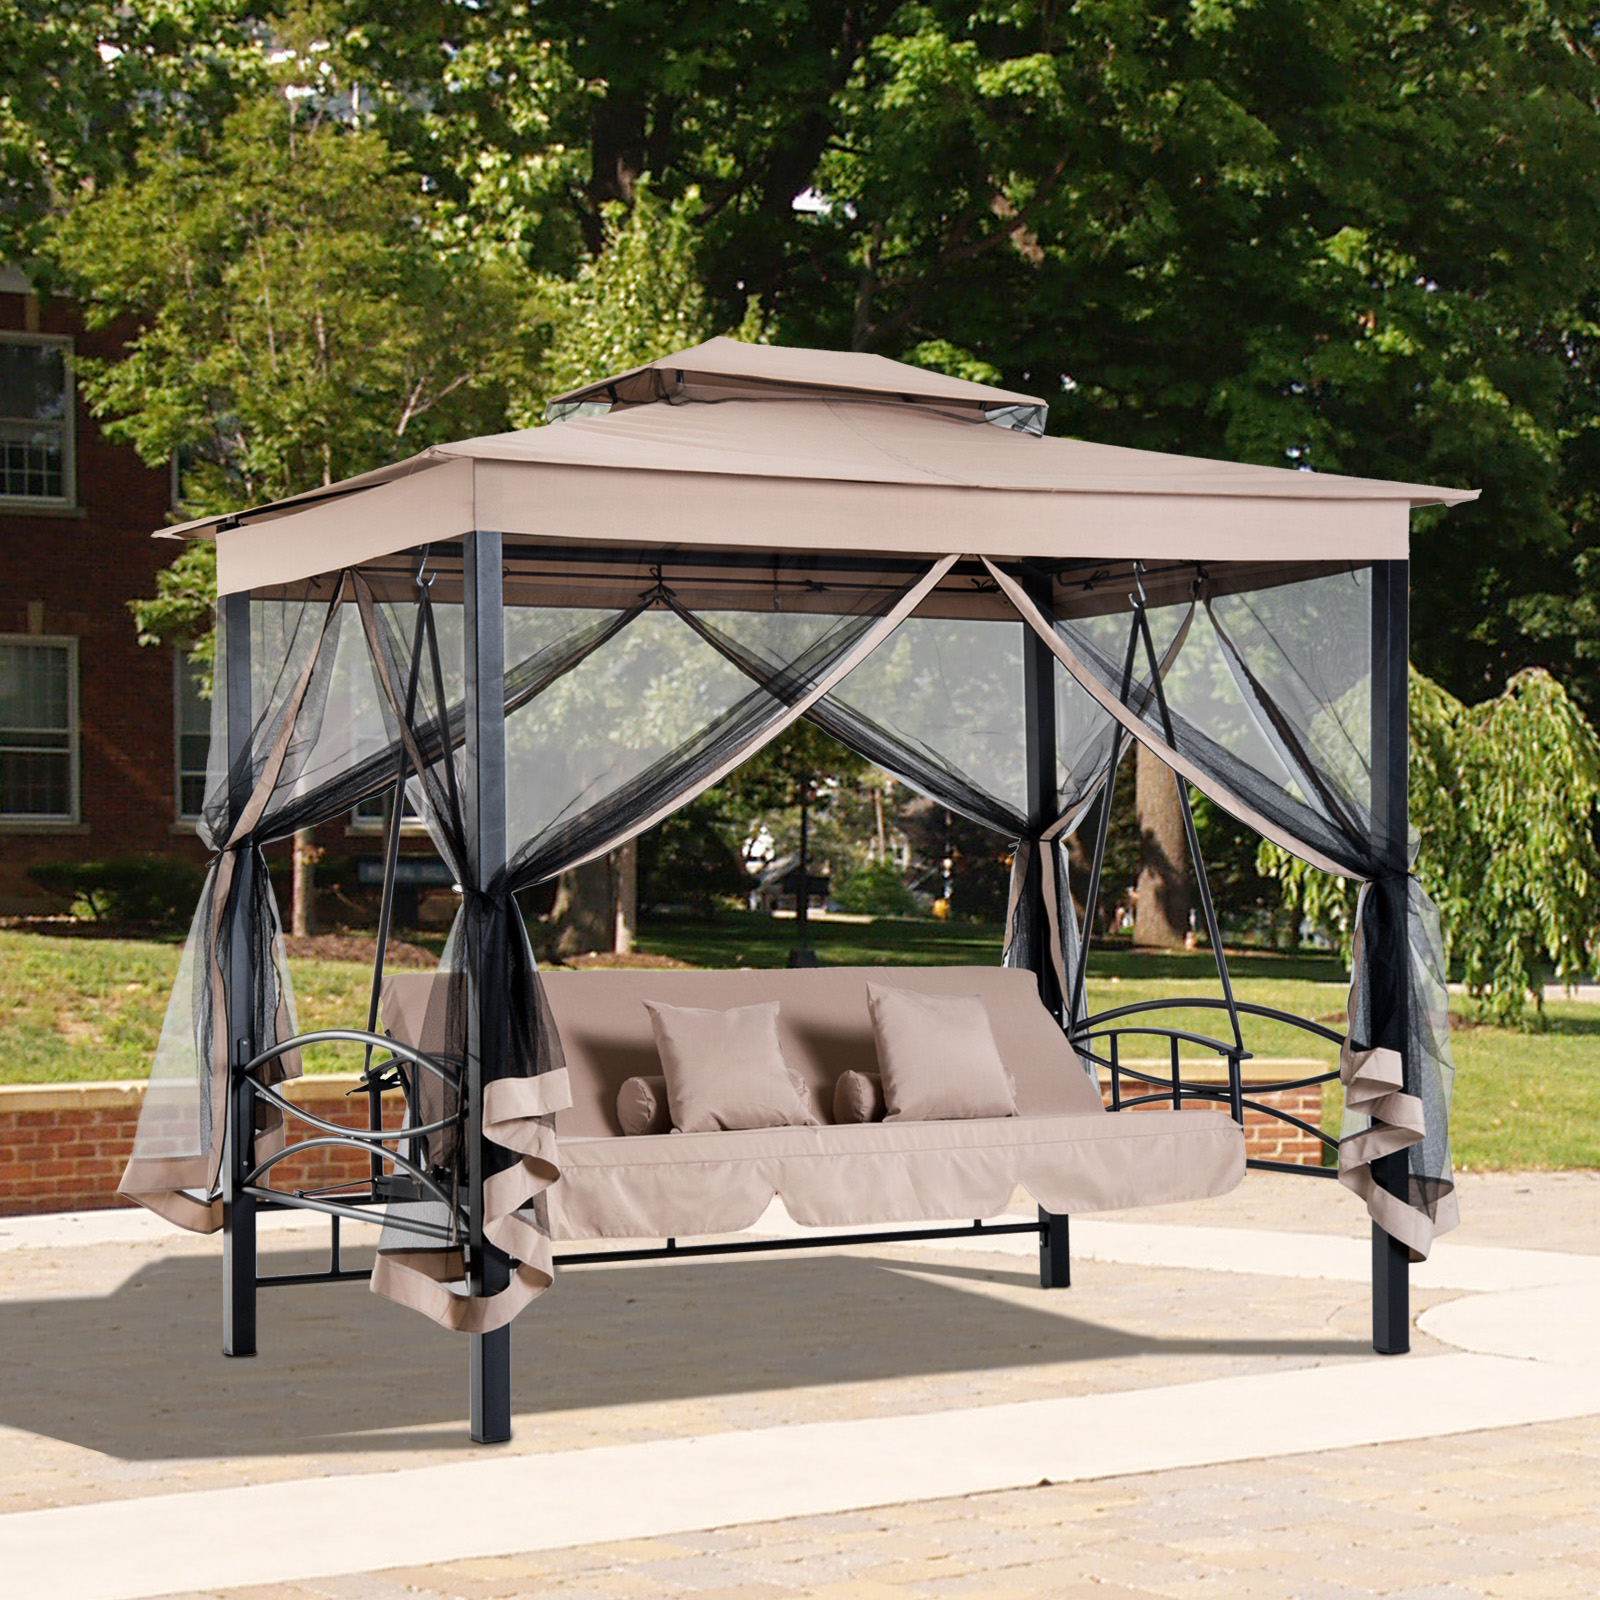 3 in 1 patio swing gazebo canopy daybed hammock canopy tent outdoor furniture 842525120470 ebay. Black Bedroom Furniture Sets. Home Design Ideas